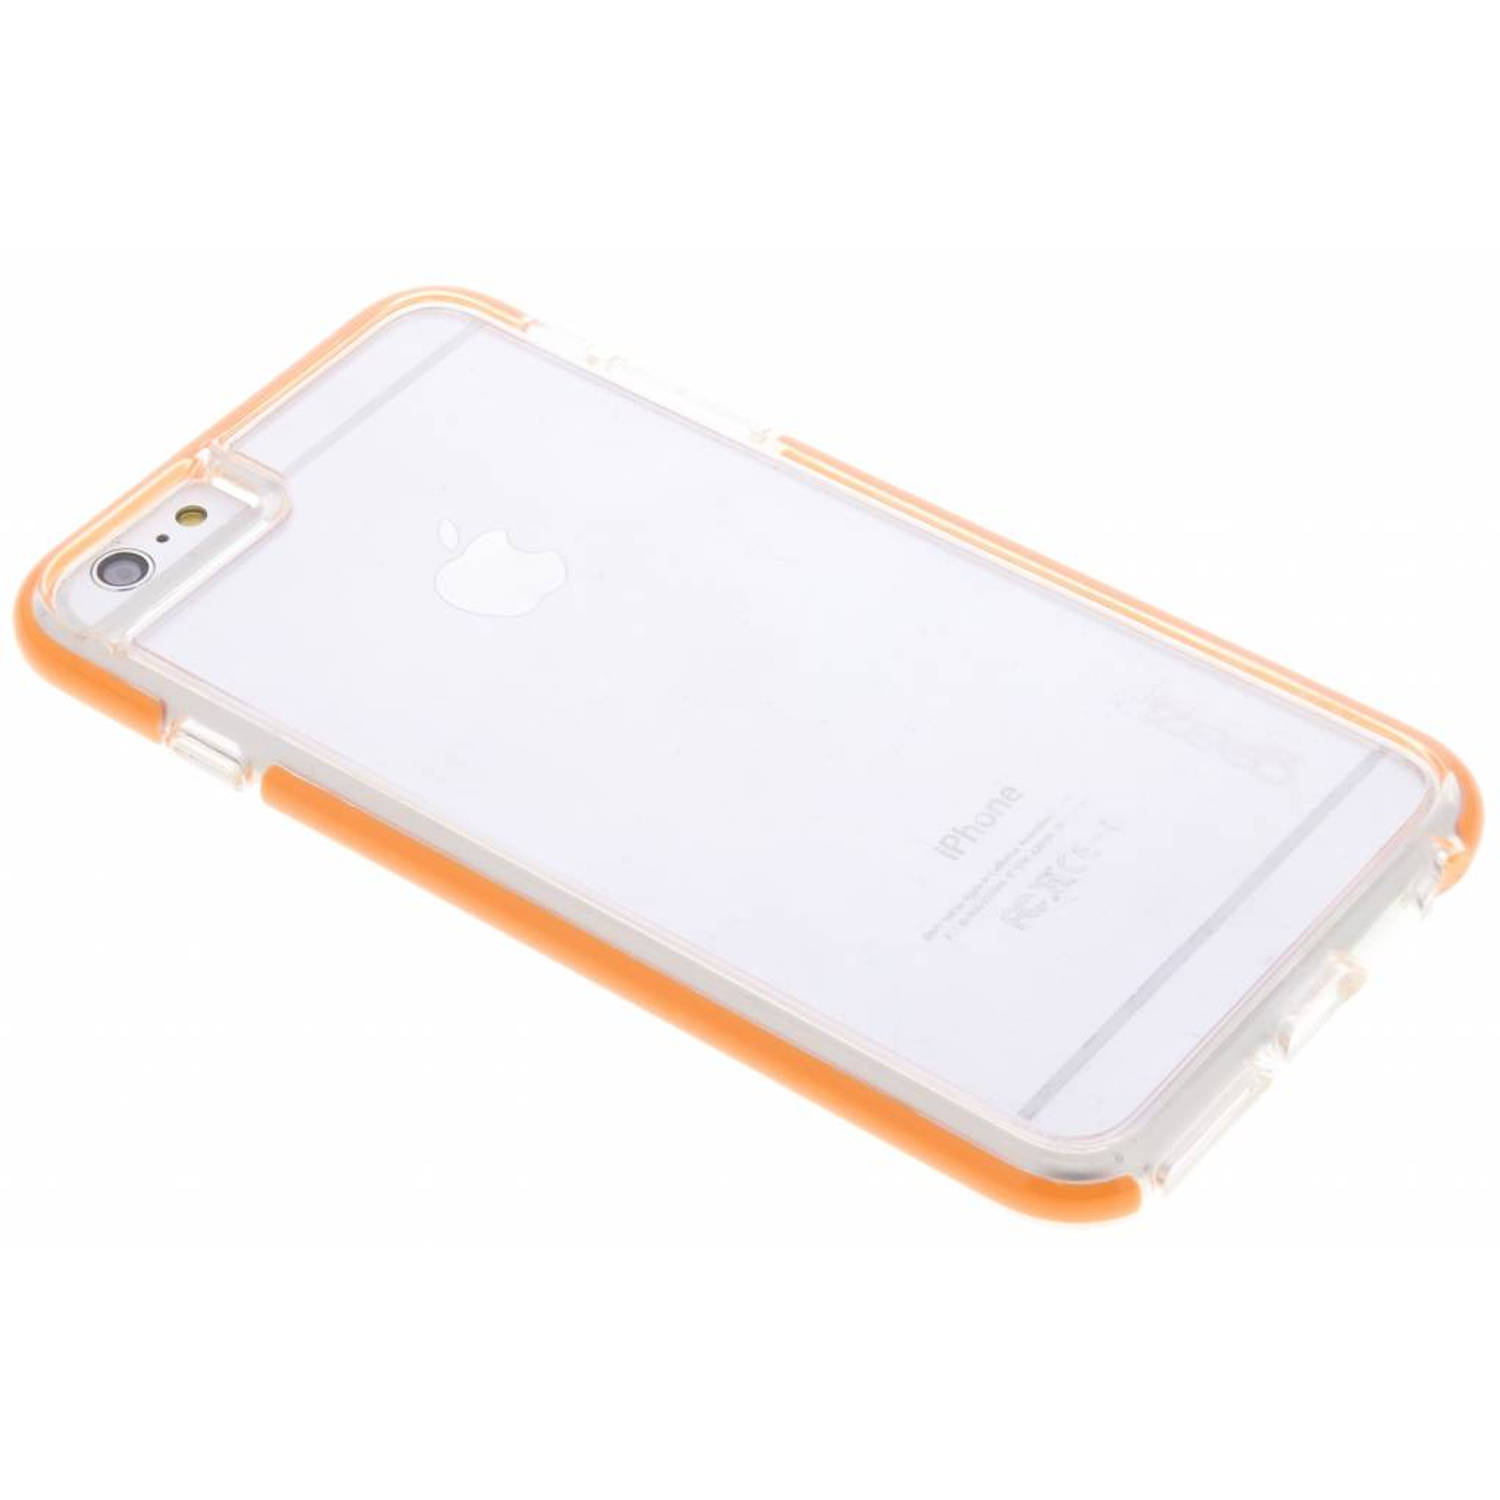 Transparante D3O IceBox Shock voor de iPhone 6 Plus / 6s Plus